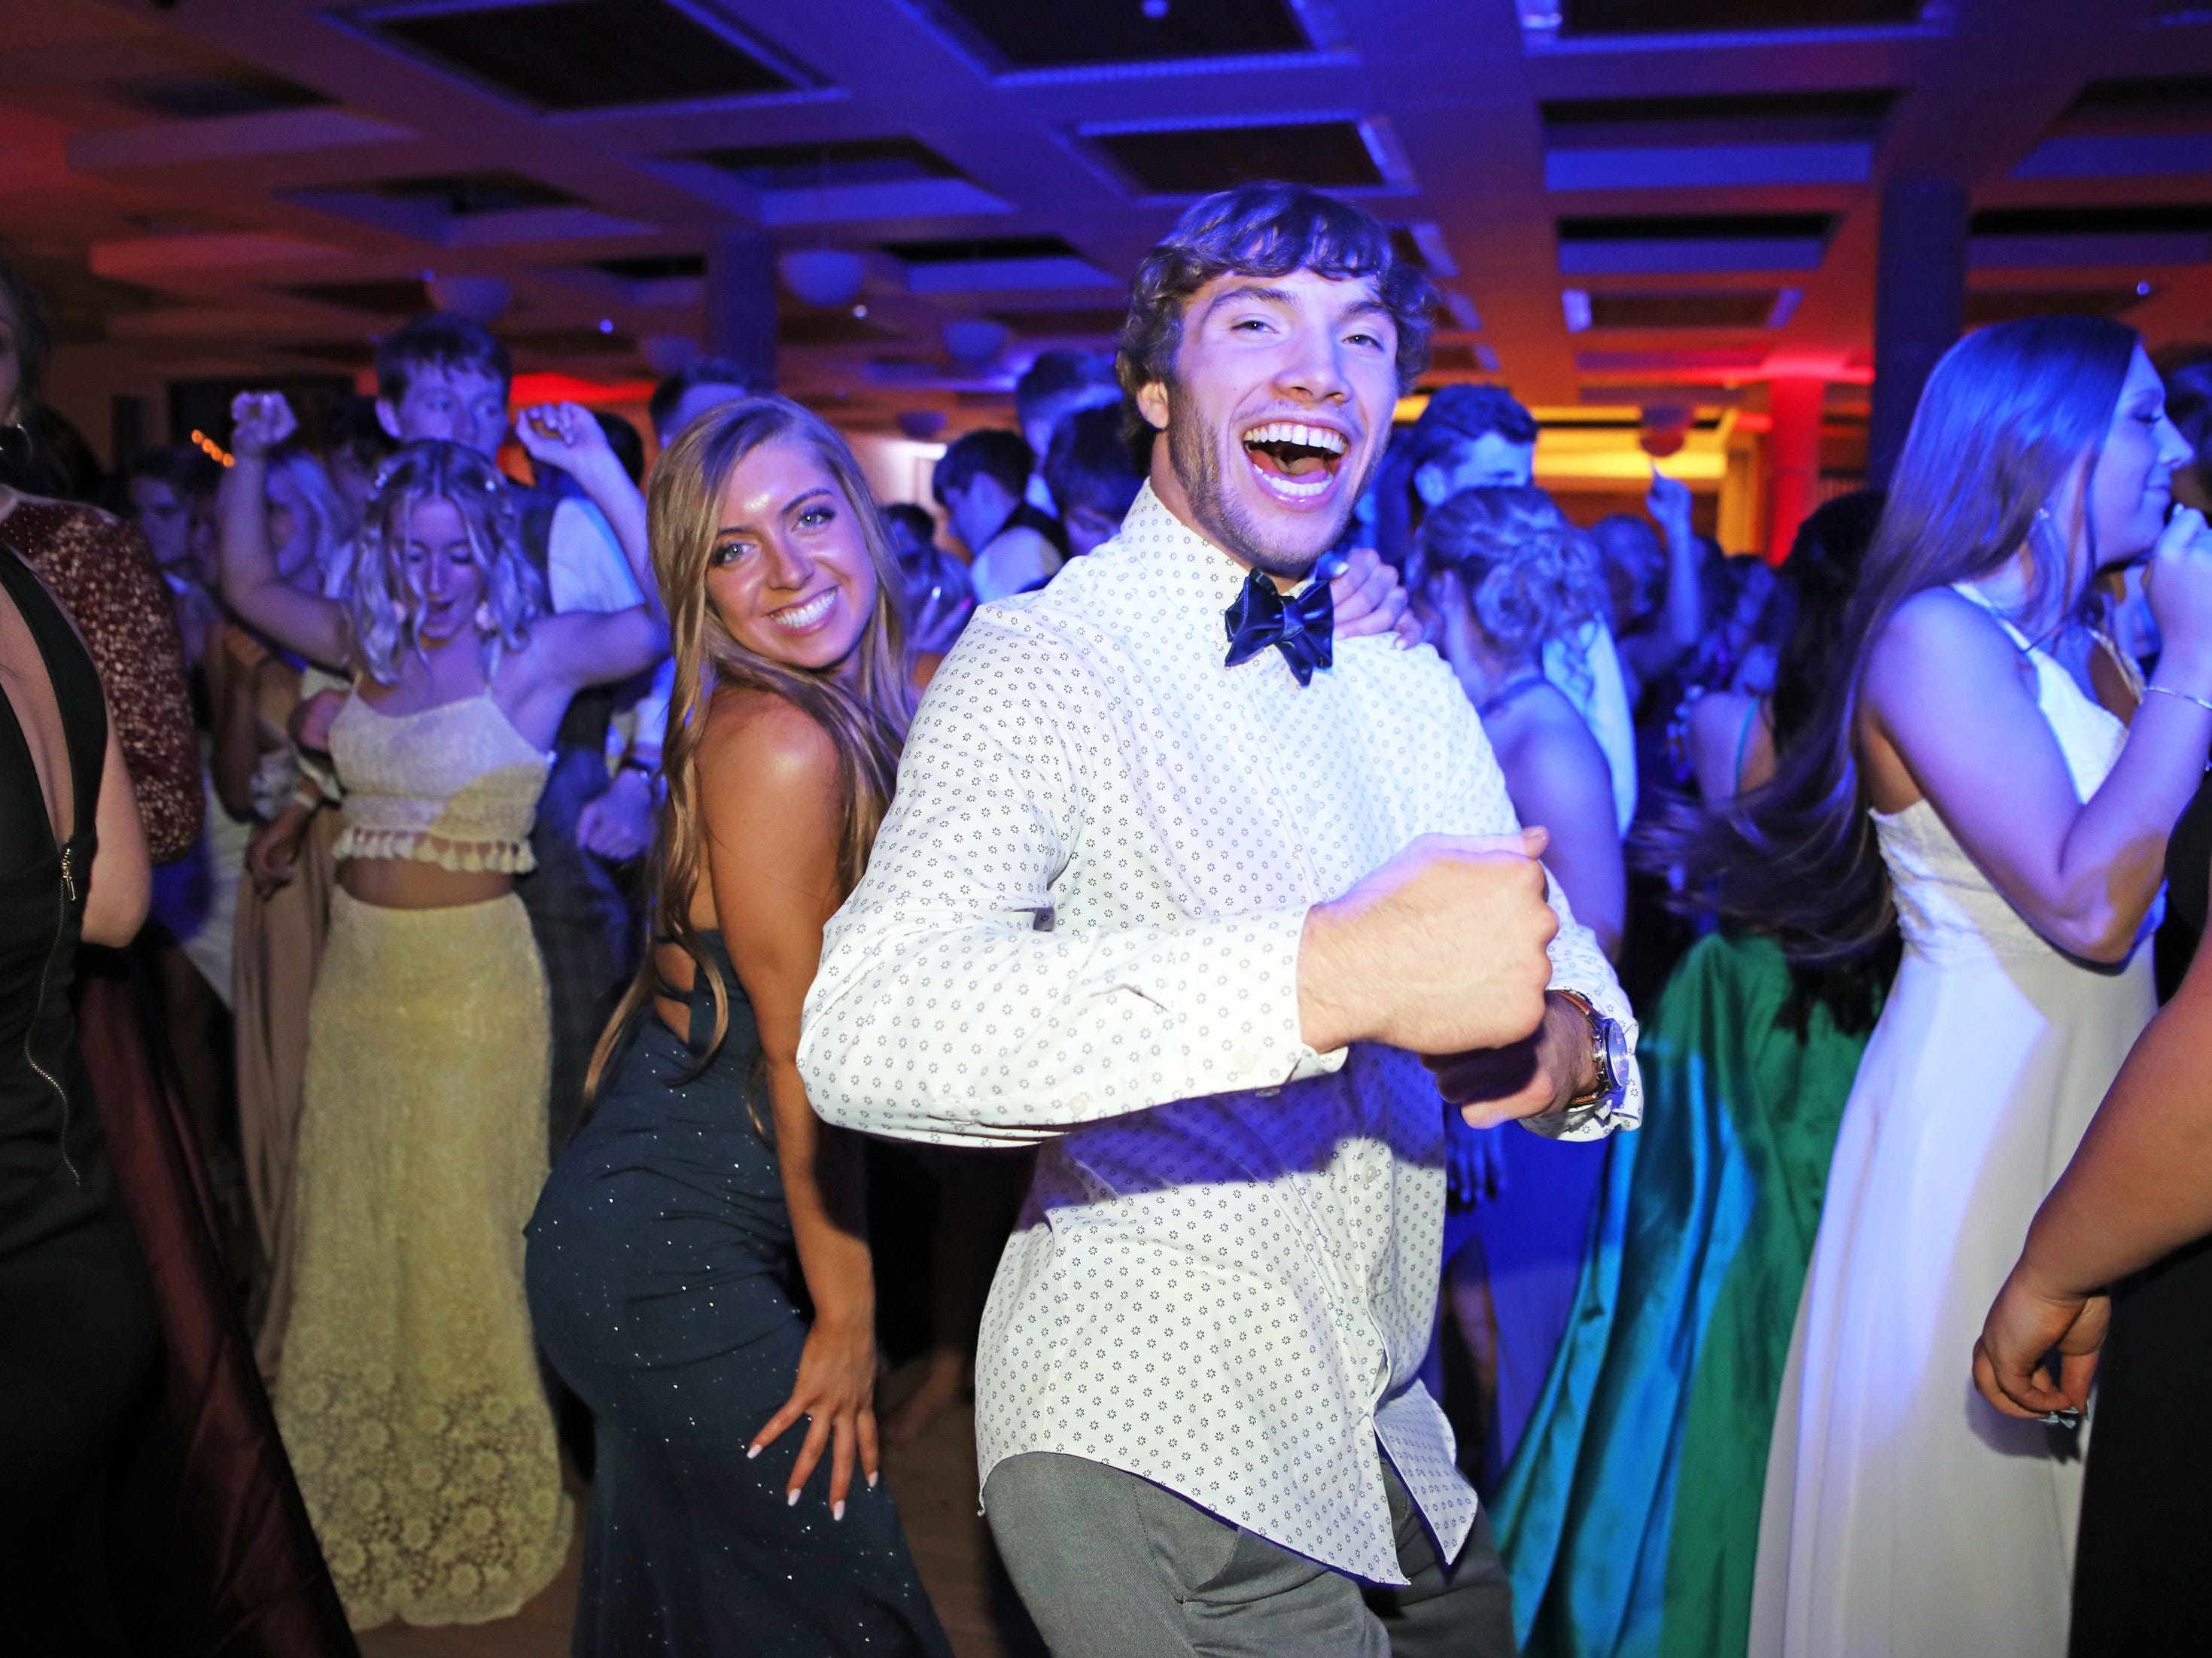 Seniors Hayden Friedrichsen and Emily Cormier dance the night away during the circus-themed Urbandale High School Junior/Senior Prom Spectacular at the State Historical Building in Des Moines on Saturday, April 11, 2019.  The post-prom event is held at school right after the dance from 11 p.m. to 4:30 a.m. with food, prizes, a hypnotist, inflatables, and casino games.